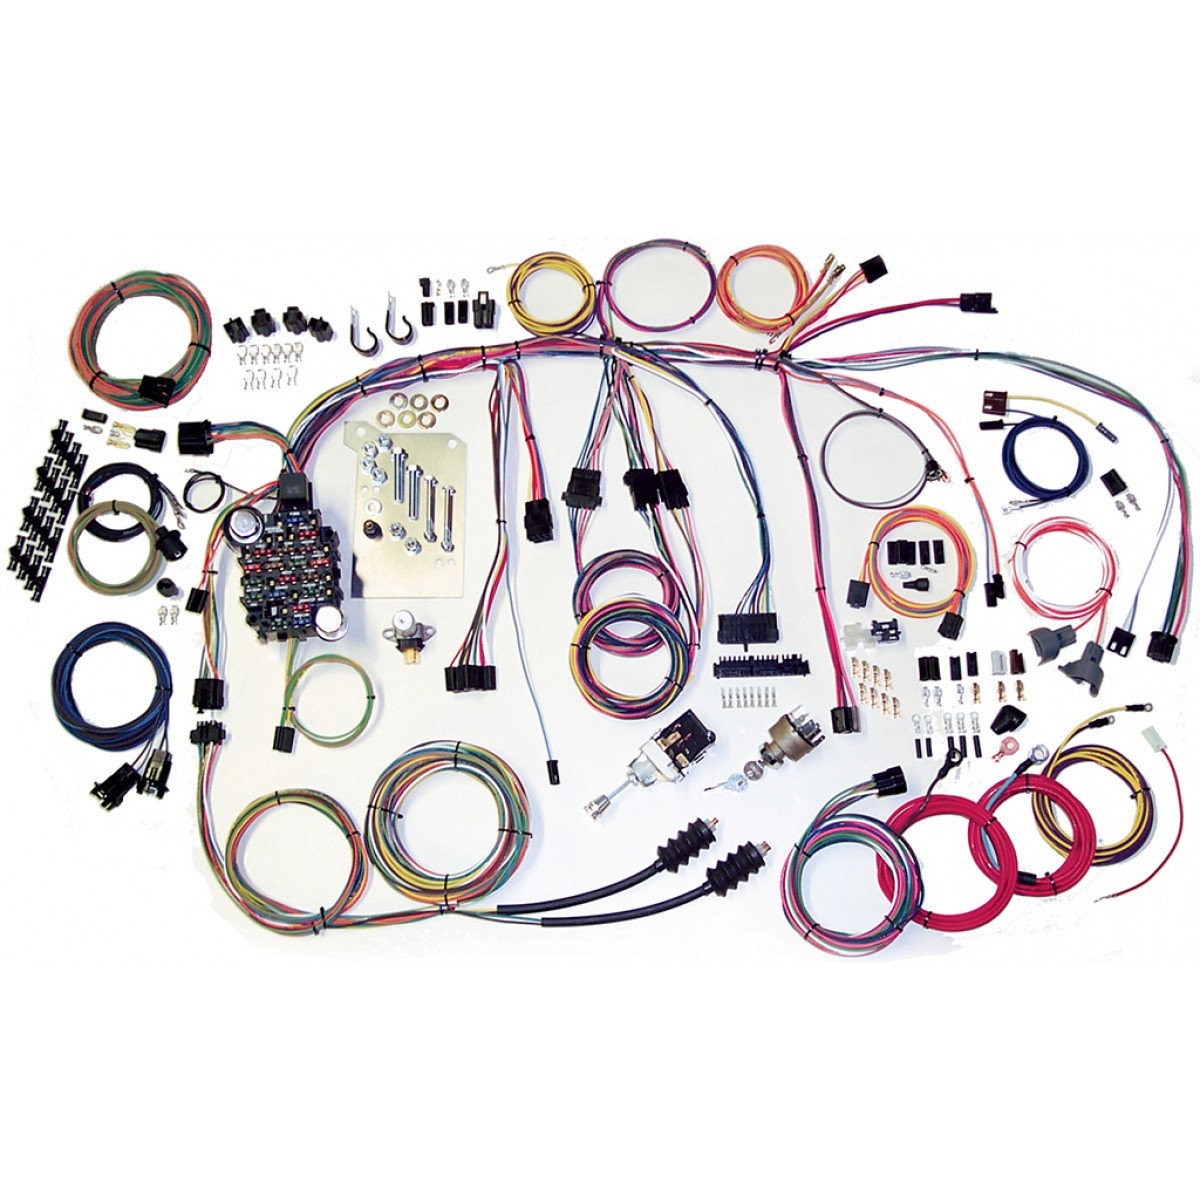 hight resolution of chevy c10 wiring harness complete wiring harness kit 1960 1966 350 chevy wiring harness 1966 chevy c10 wiring harness